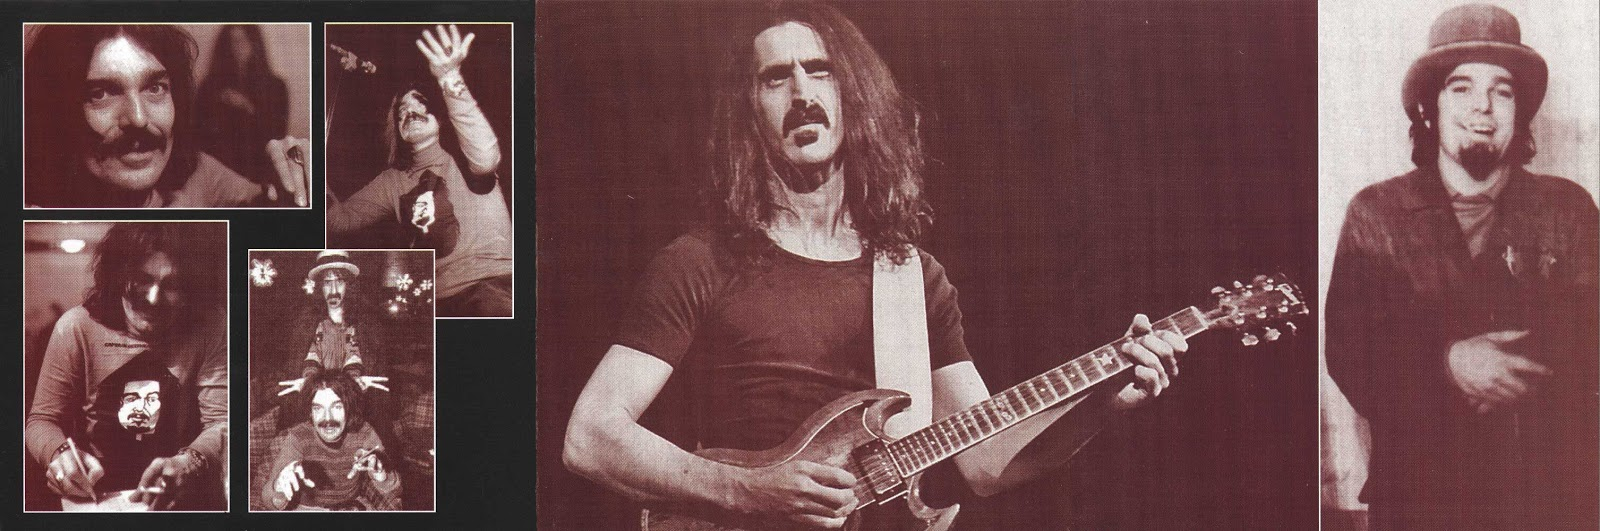 the contributions of frank zappa as a musician Today, a premier live music hologram production company, eyellusion, announced that it's working with the zappa family trust to create a new touring performance featuring hologram performances of the iconic and eccentric musician, frank zappa.